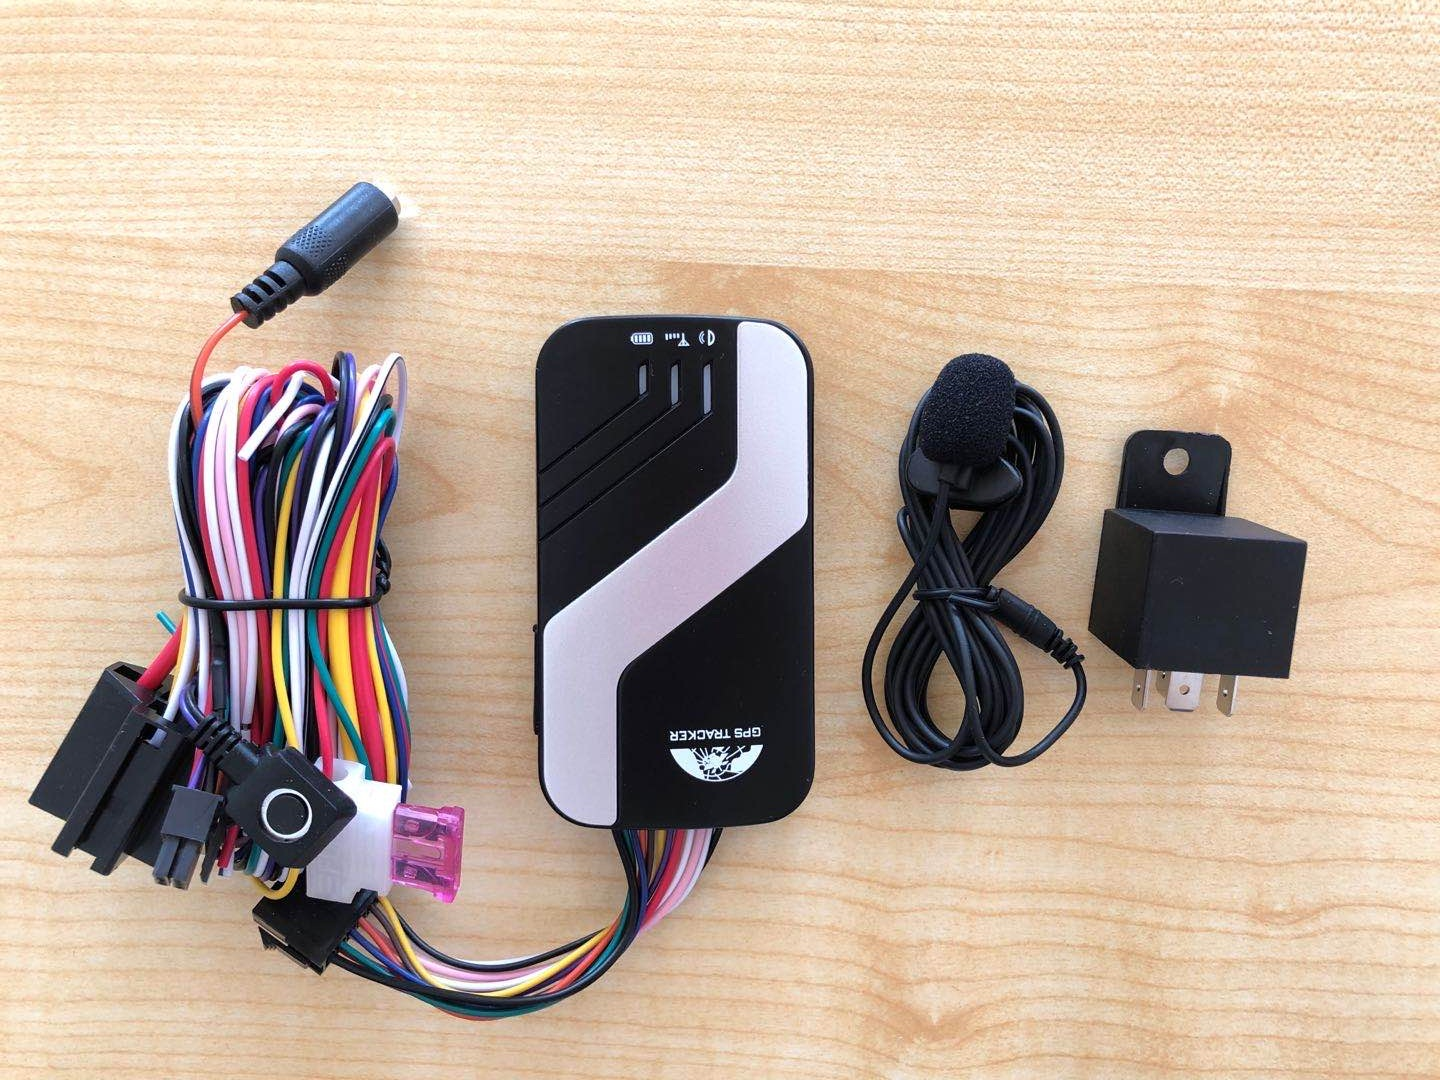 New 4G lte gps vehicle tracking system support 2G 4G networks sime cards